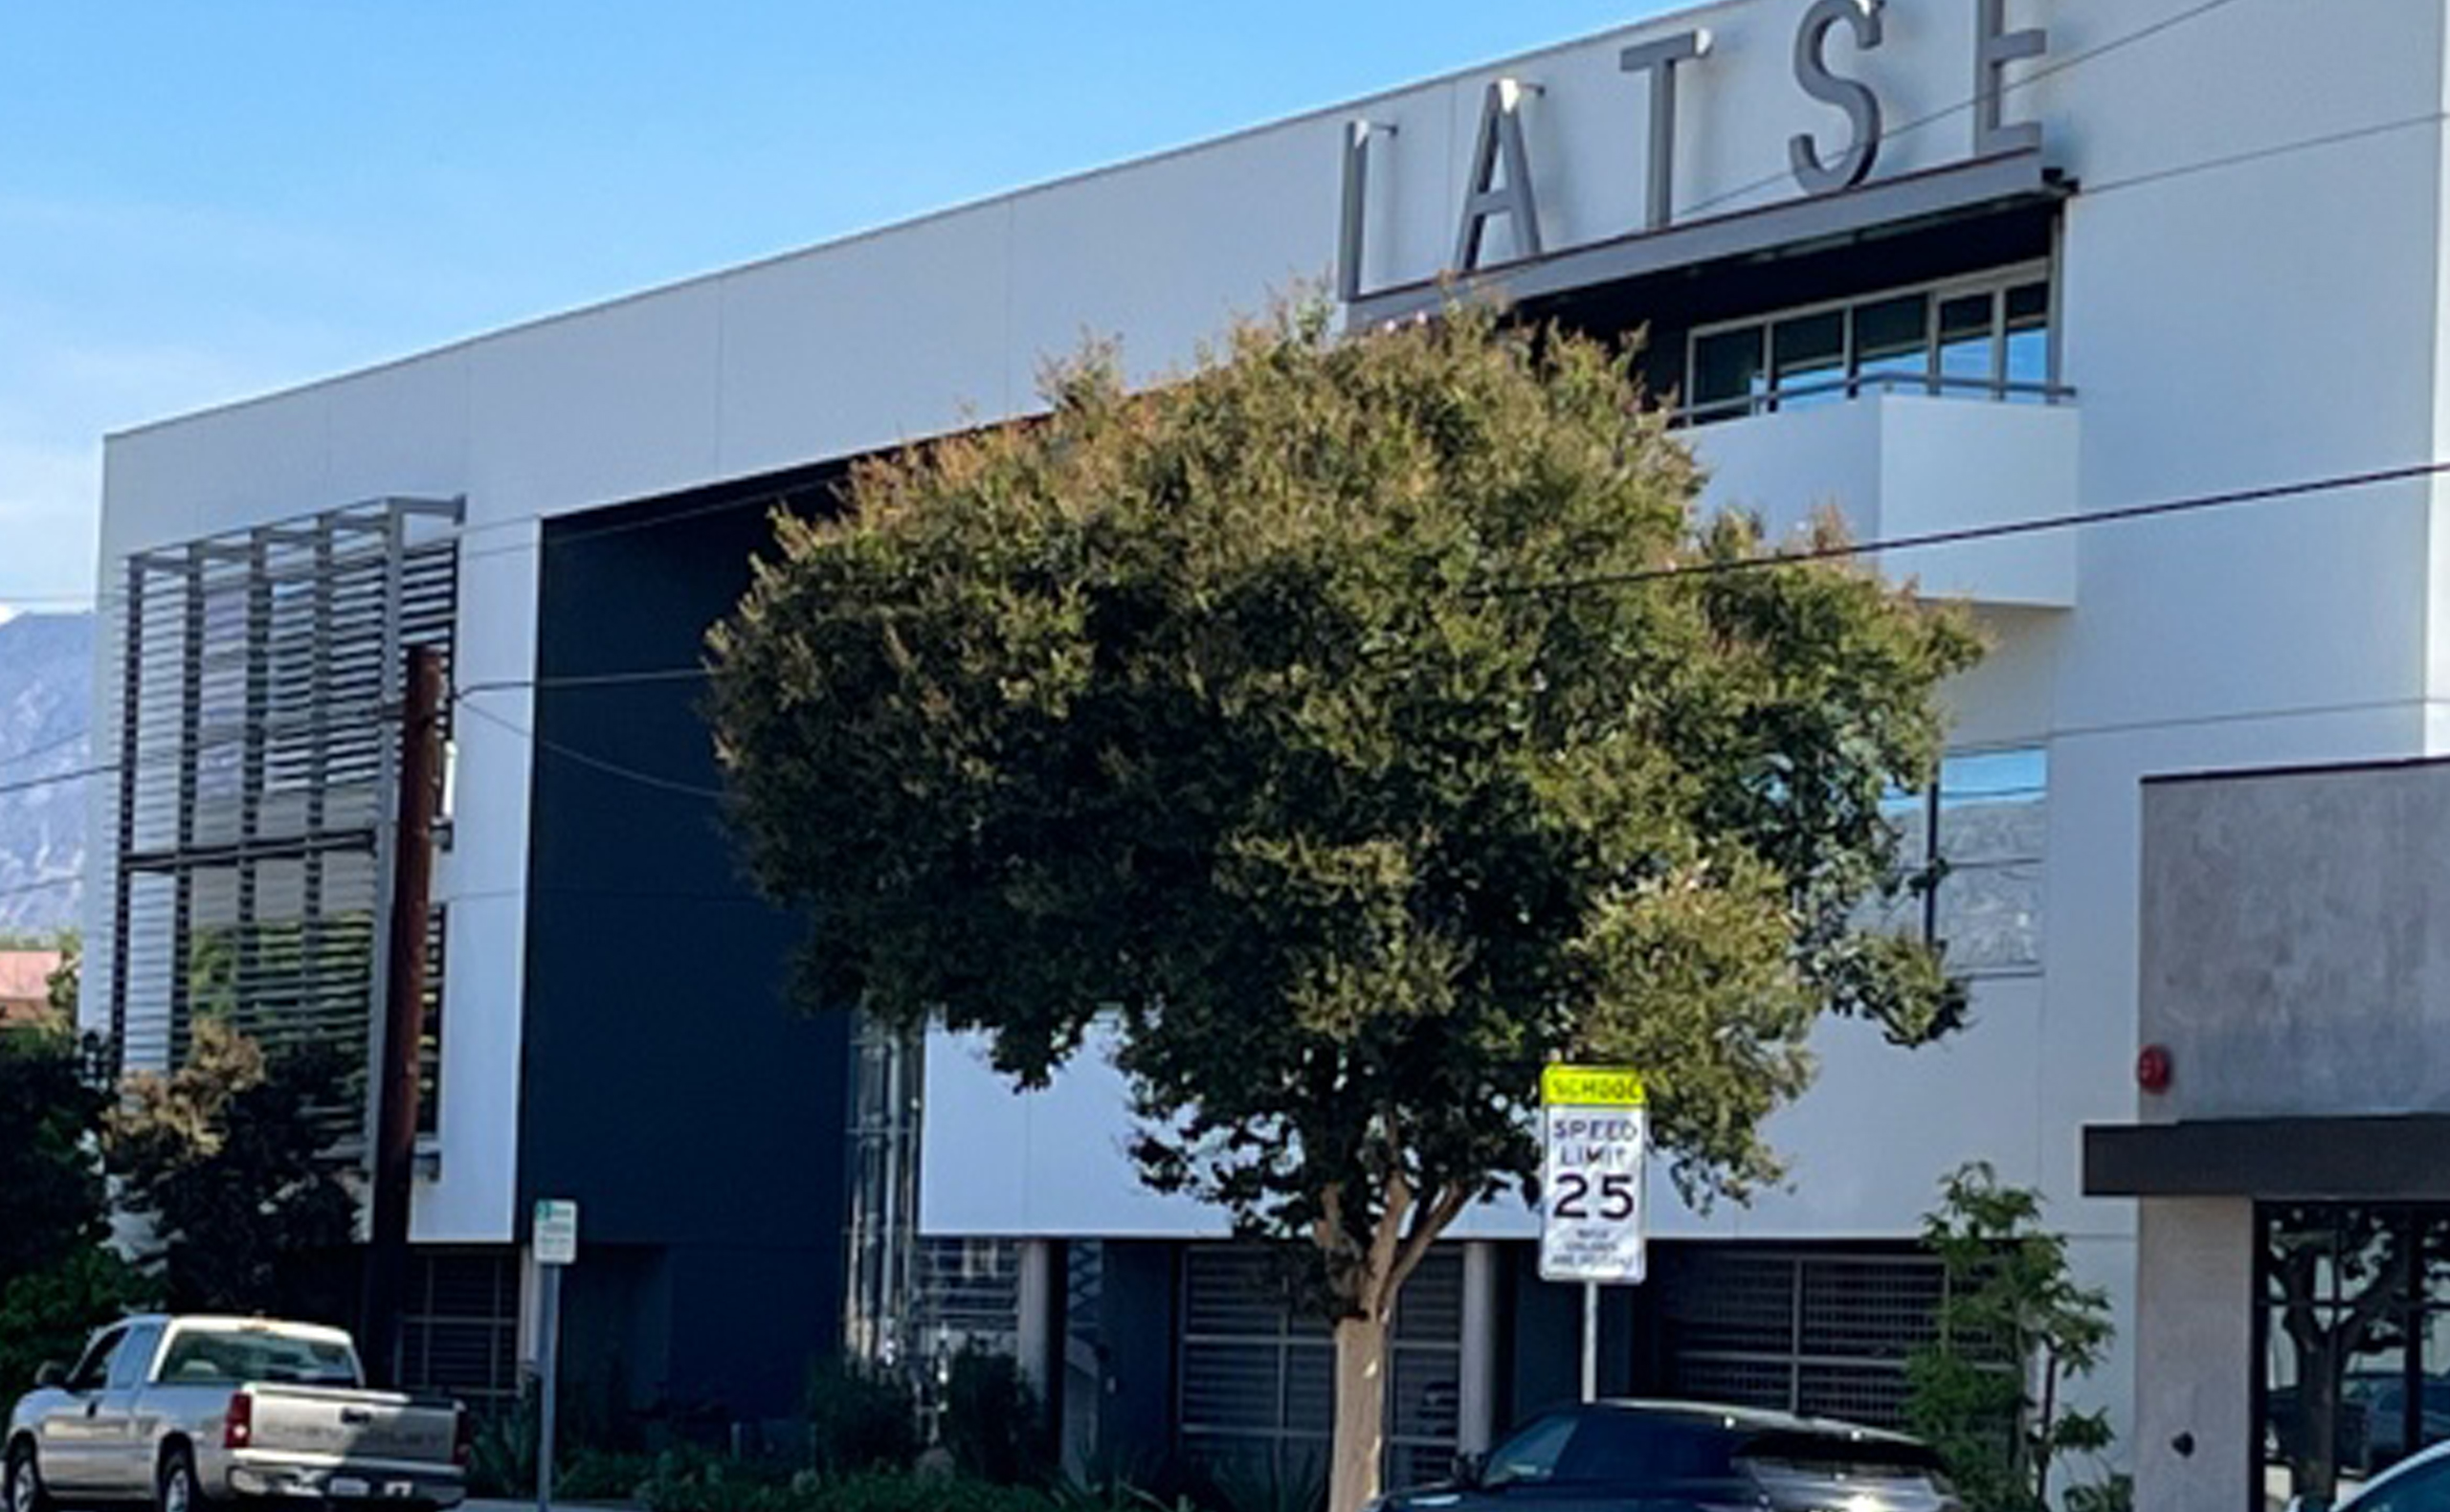 IATSE NEGOTIATIONS RESUME WITH NEW OFFER FROM STUDIOS